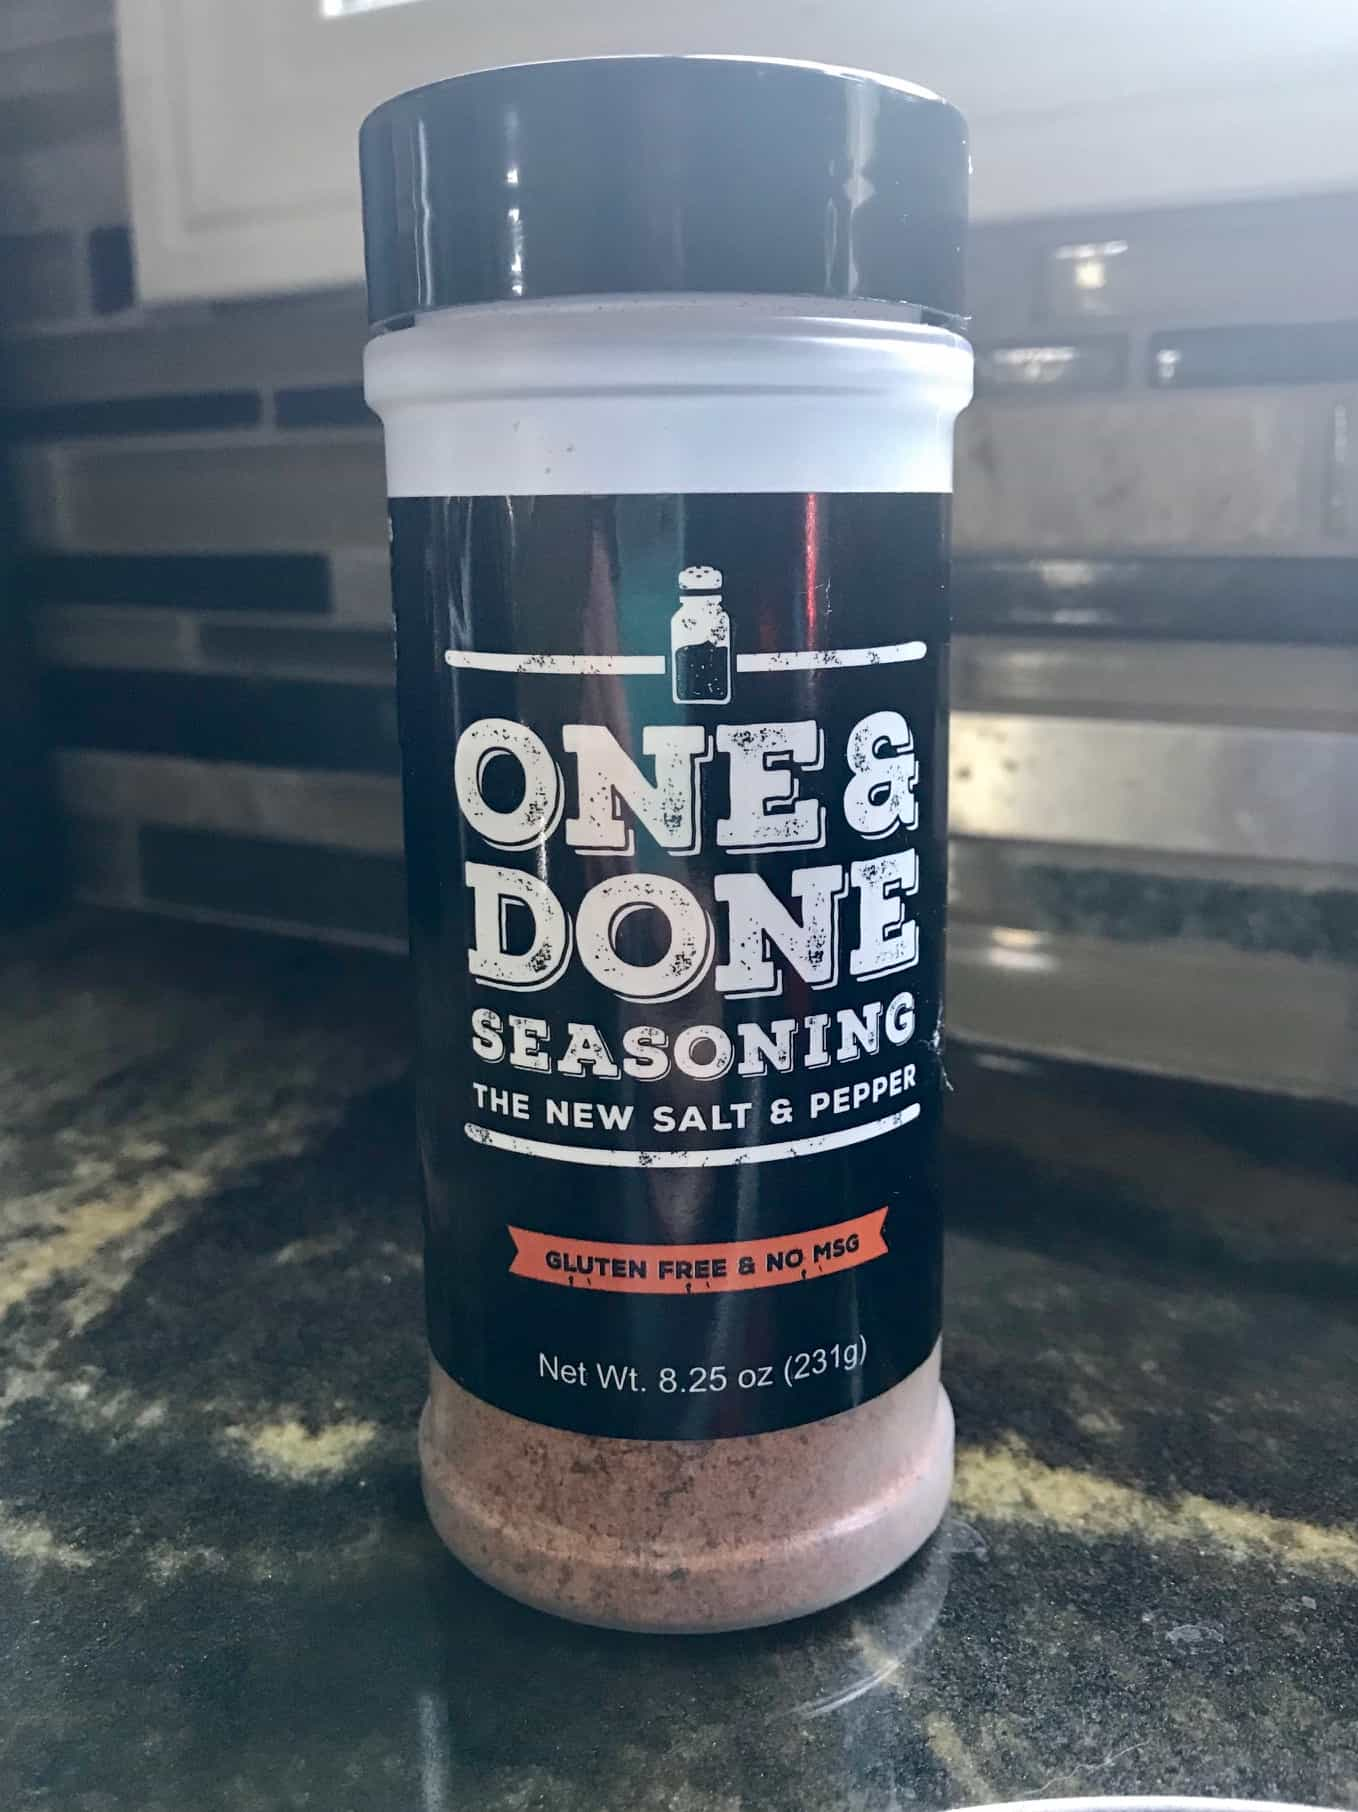 One and Done Seasoning for reference